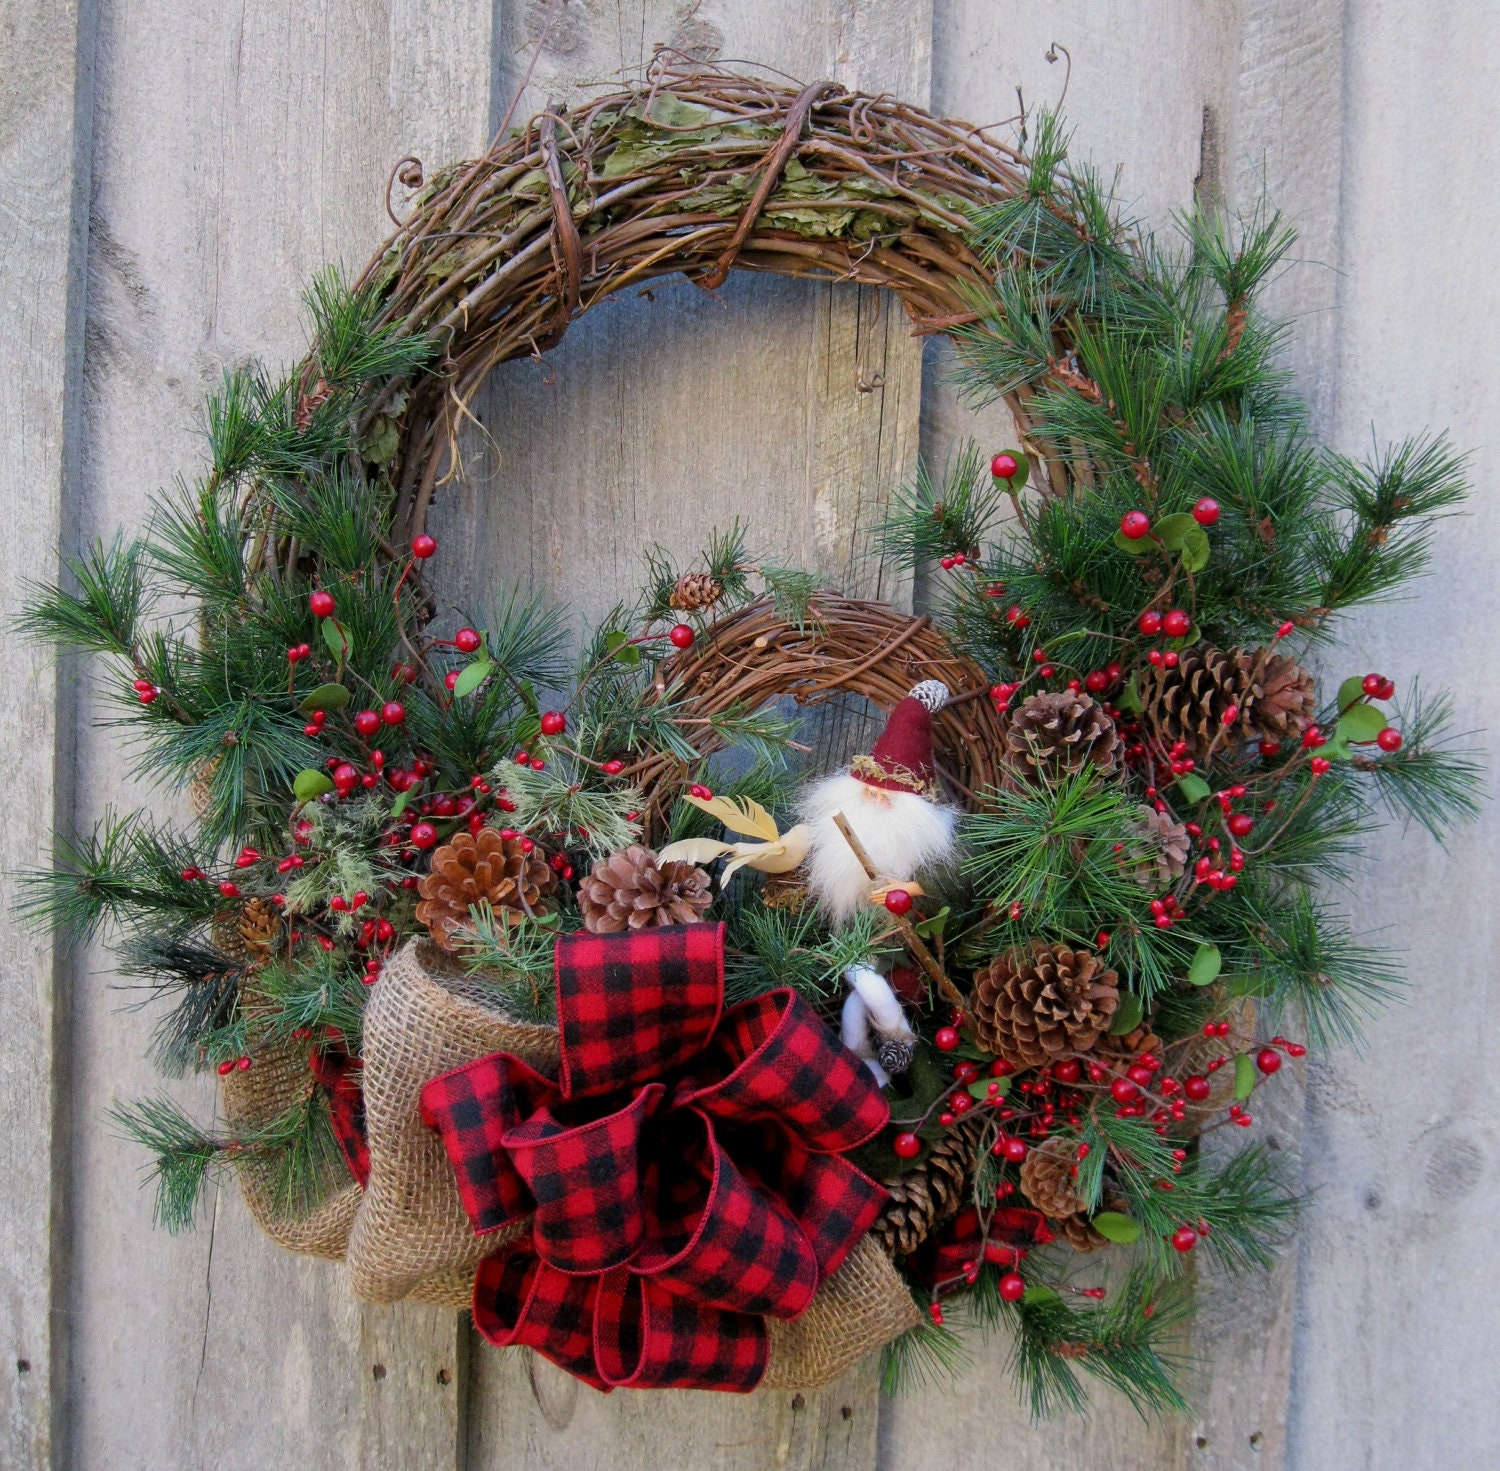 Christmas Decorations Holiday Decorations Decor: Christmas Wreath Holiday Décor Woodland Christmas Rustic